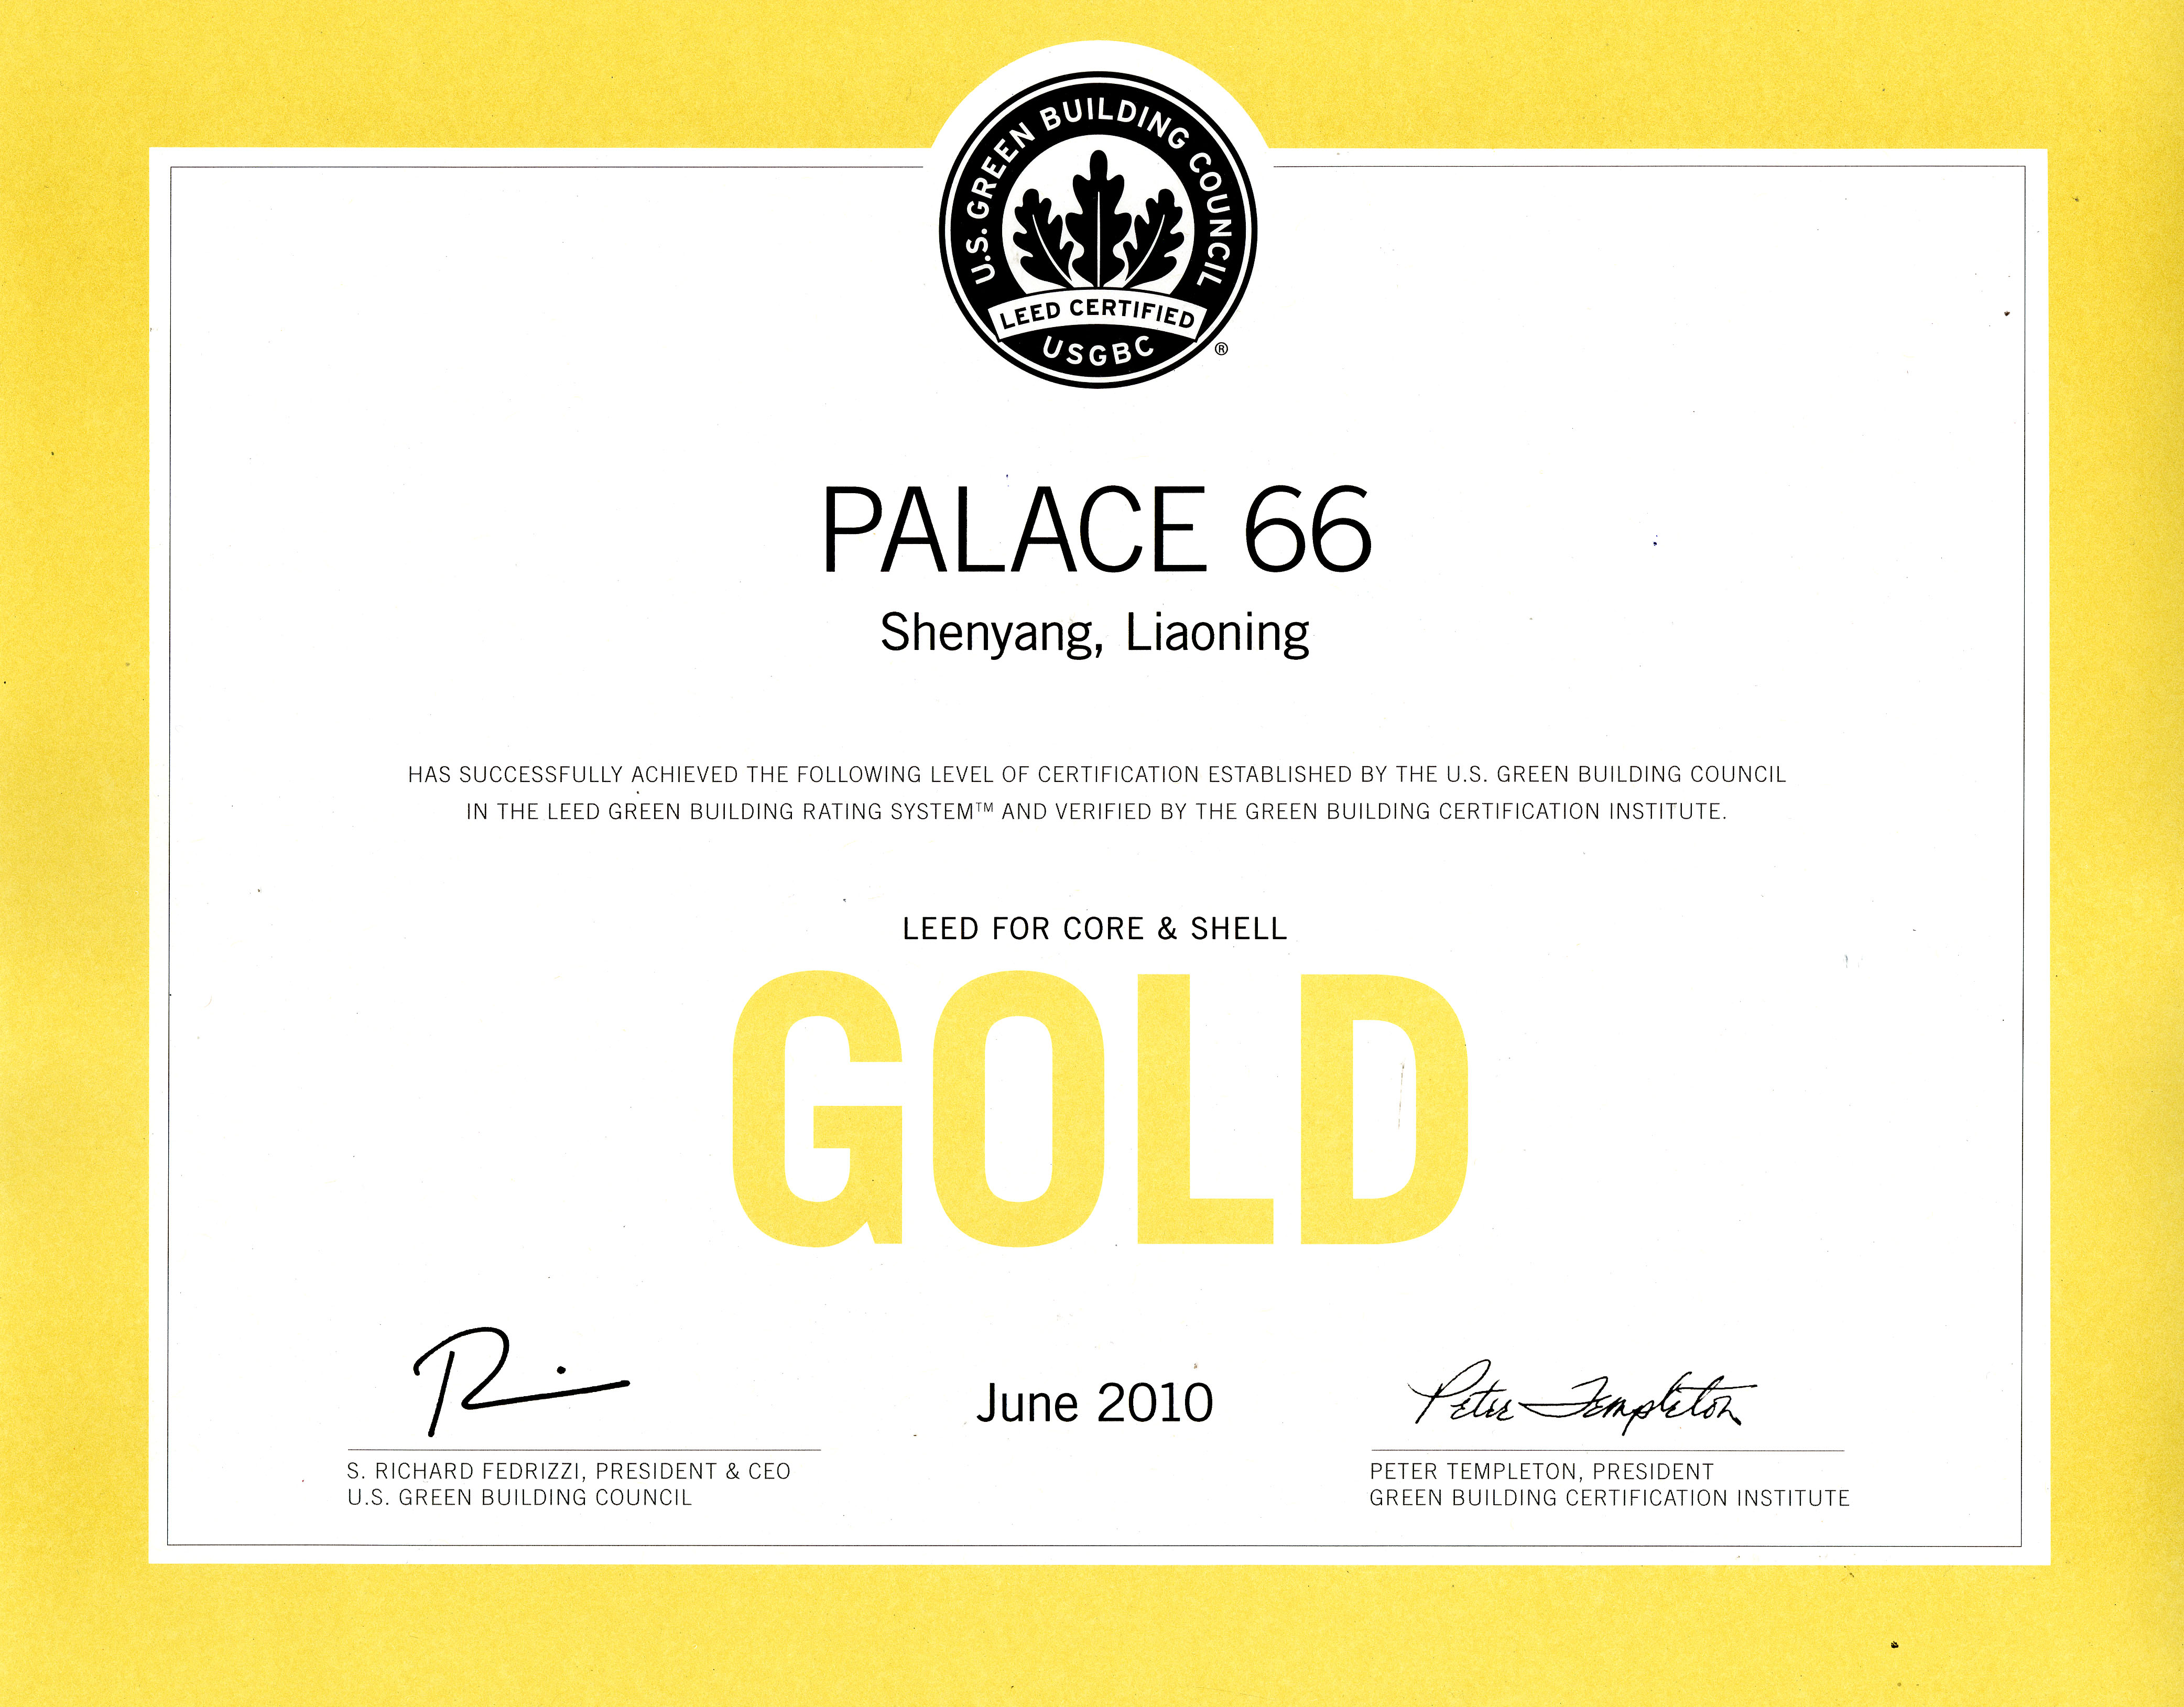 Hang Lung Palace 66 In Shenyang Attains Gold Level Leed Certification